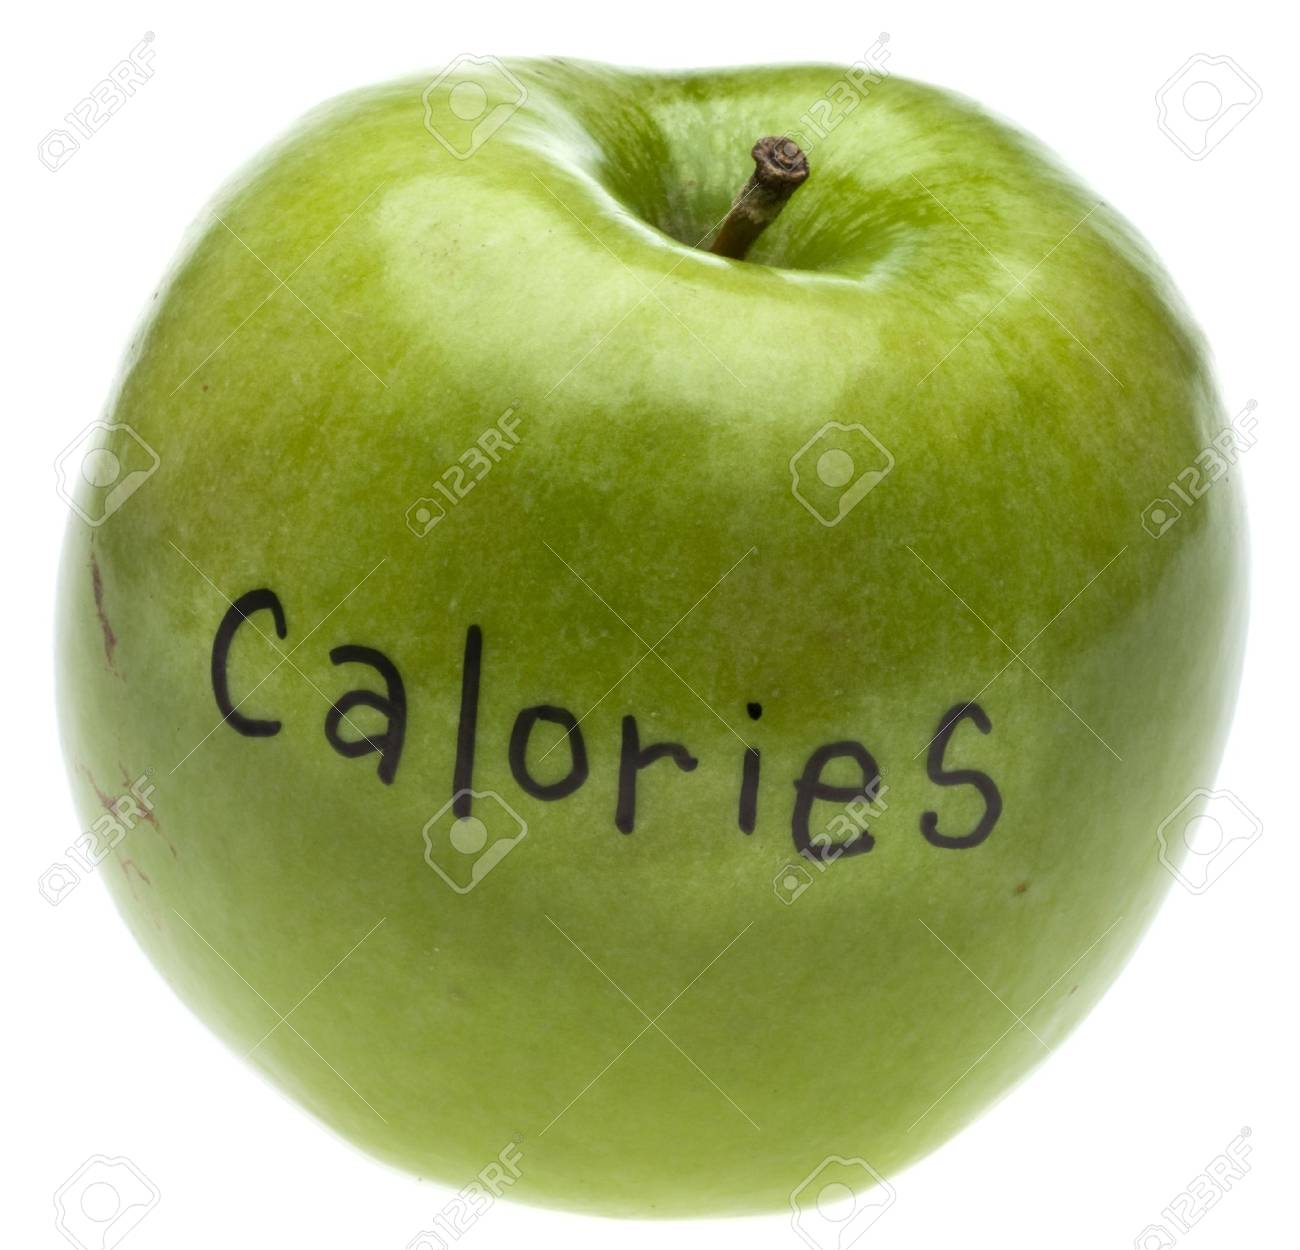 Calorie Concept Apple Isolated on White Stock Photo - 8790158